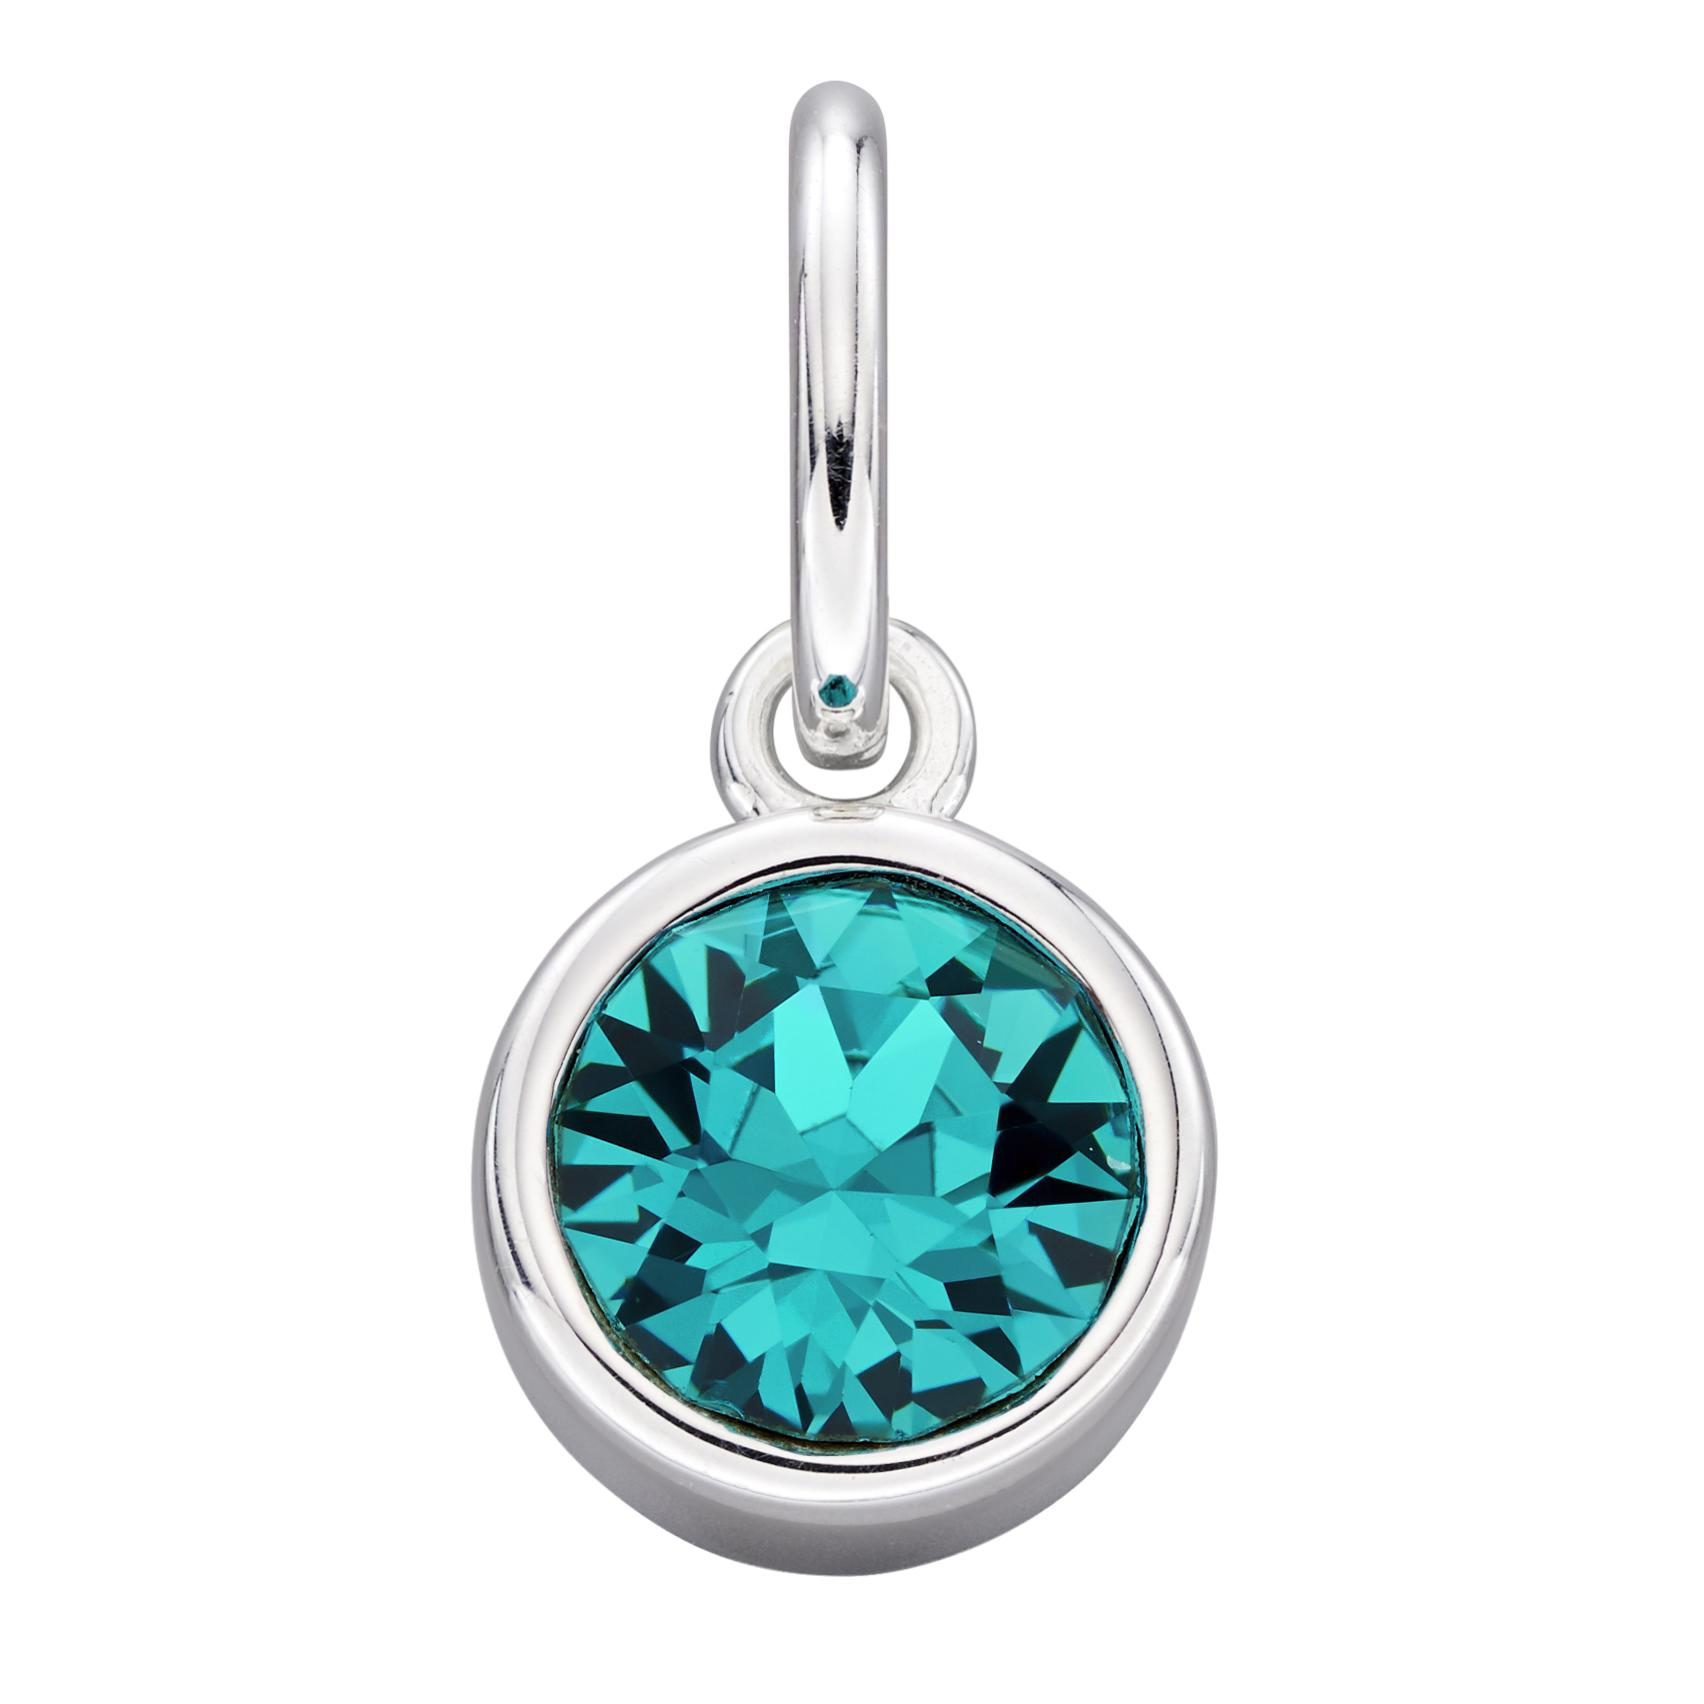 Details about  /.925 Sterling Silver Oval Blue CZ Charm Pendant MSRP $131